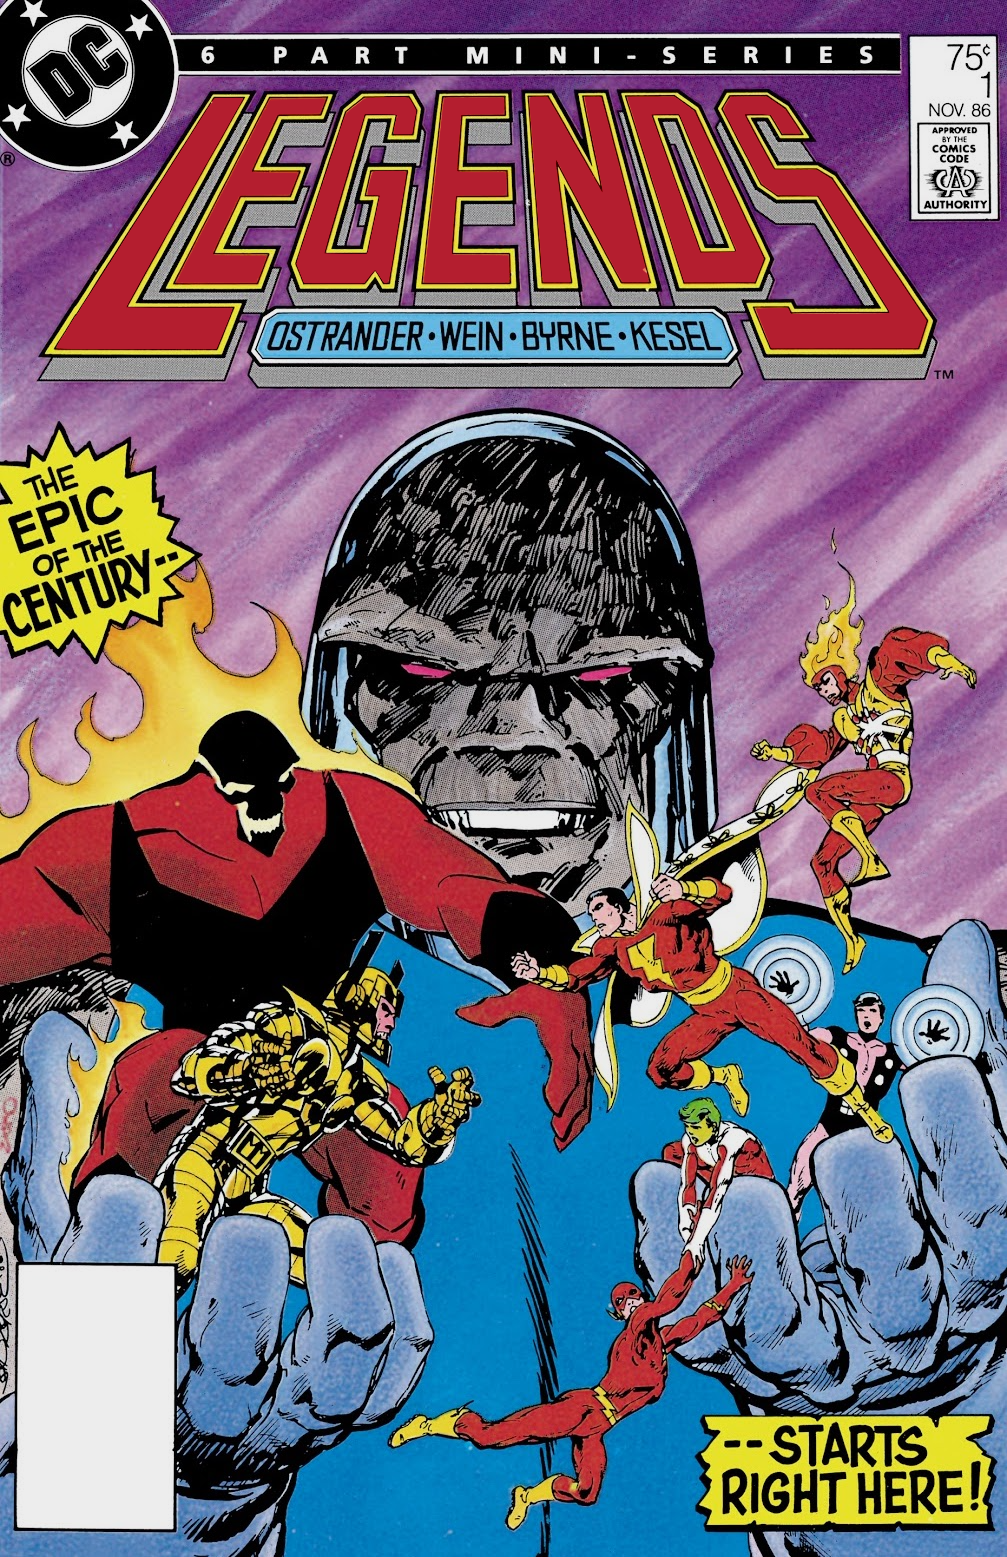 Large metaphorical figure of Darkseid holding villains Brimstone and Macro-Man in one hand with Flash, Captain Marvel, Changeling, Cosmic Boy, and Firestorm in the other